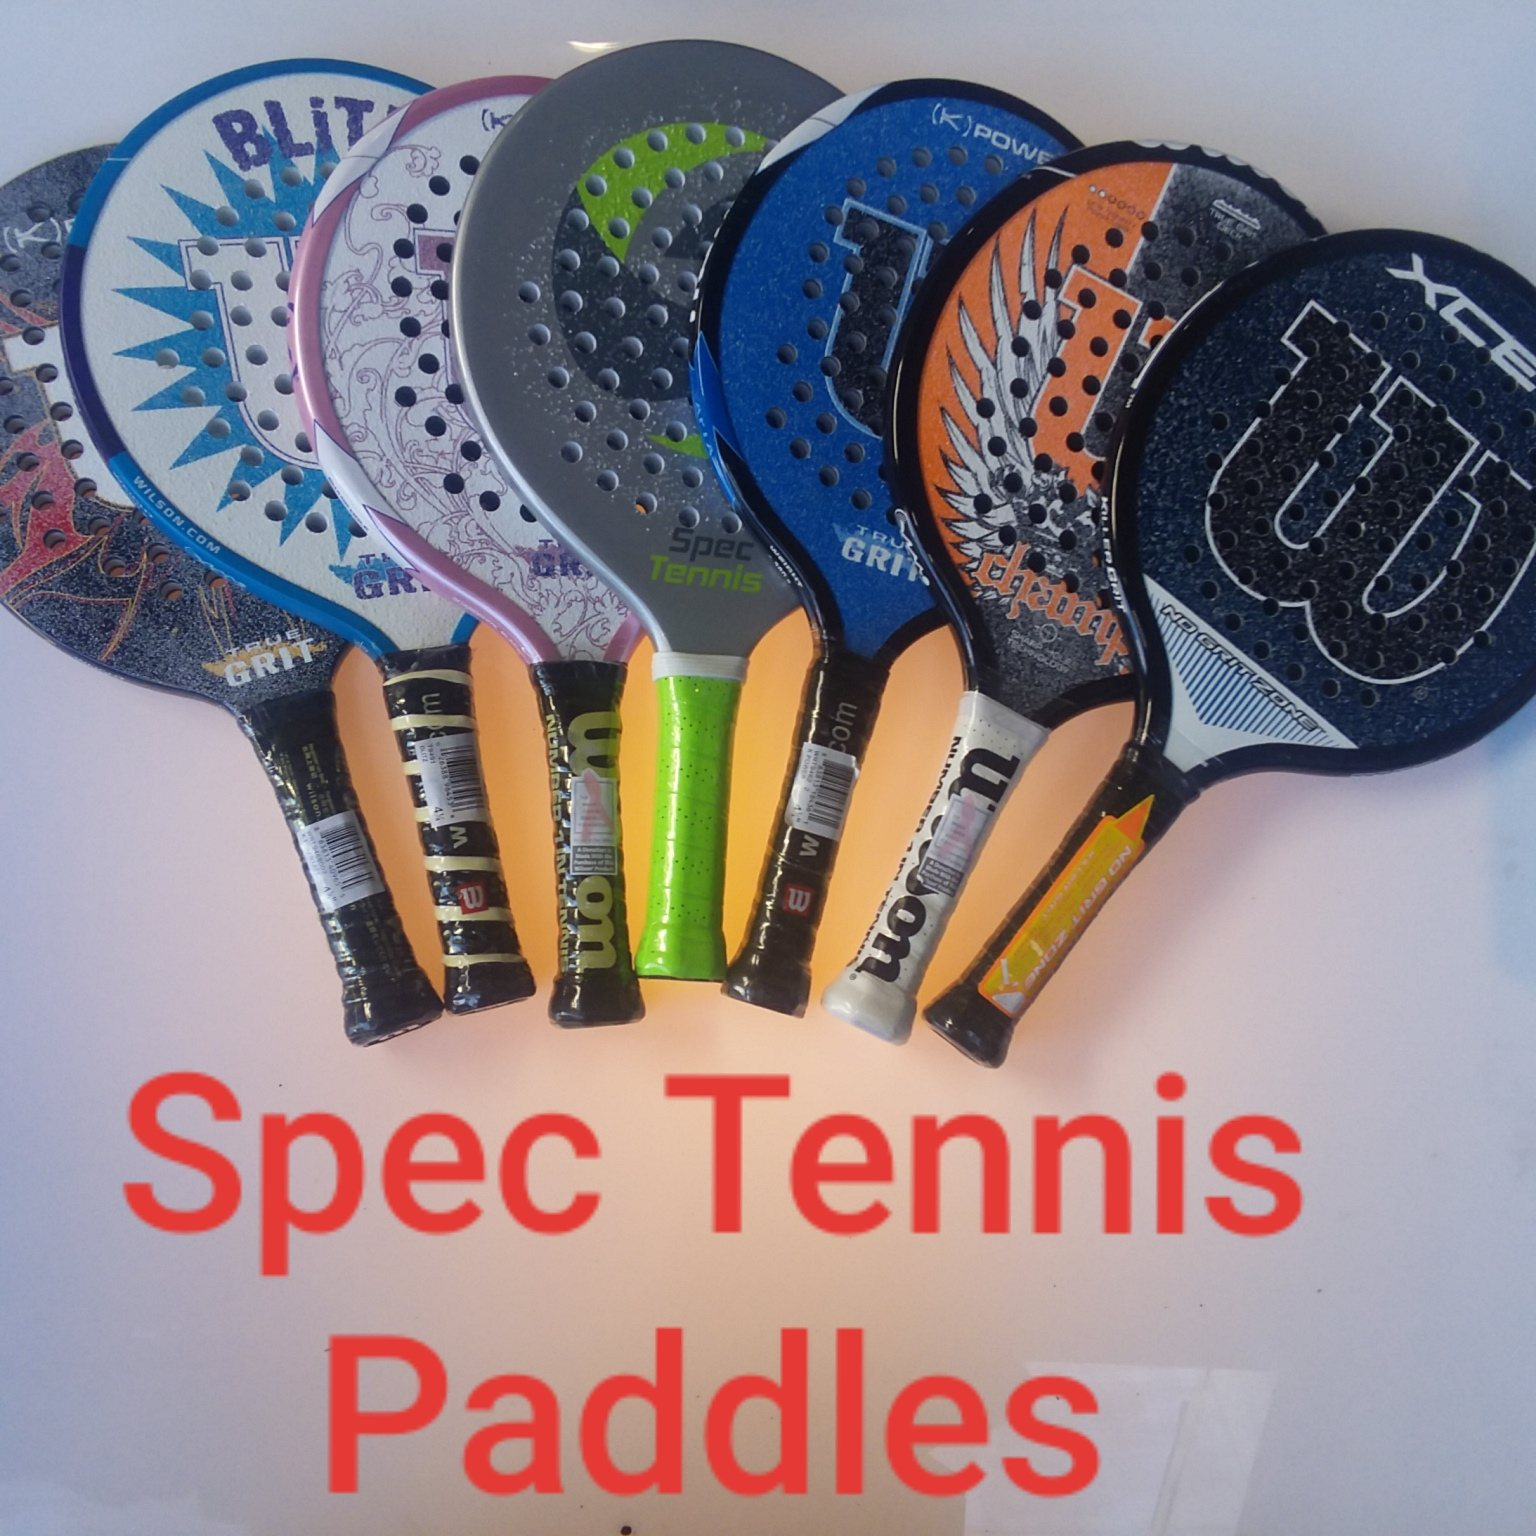 Some info on Spec Tennis Paddles.